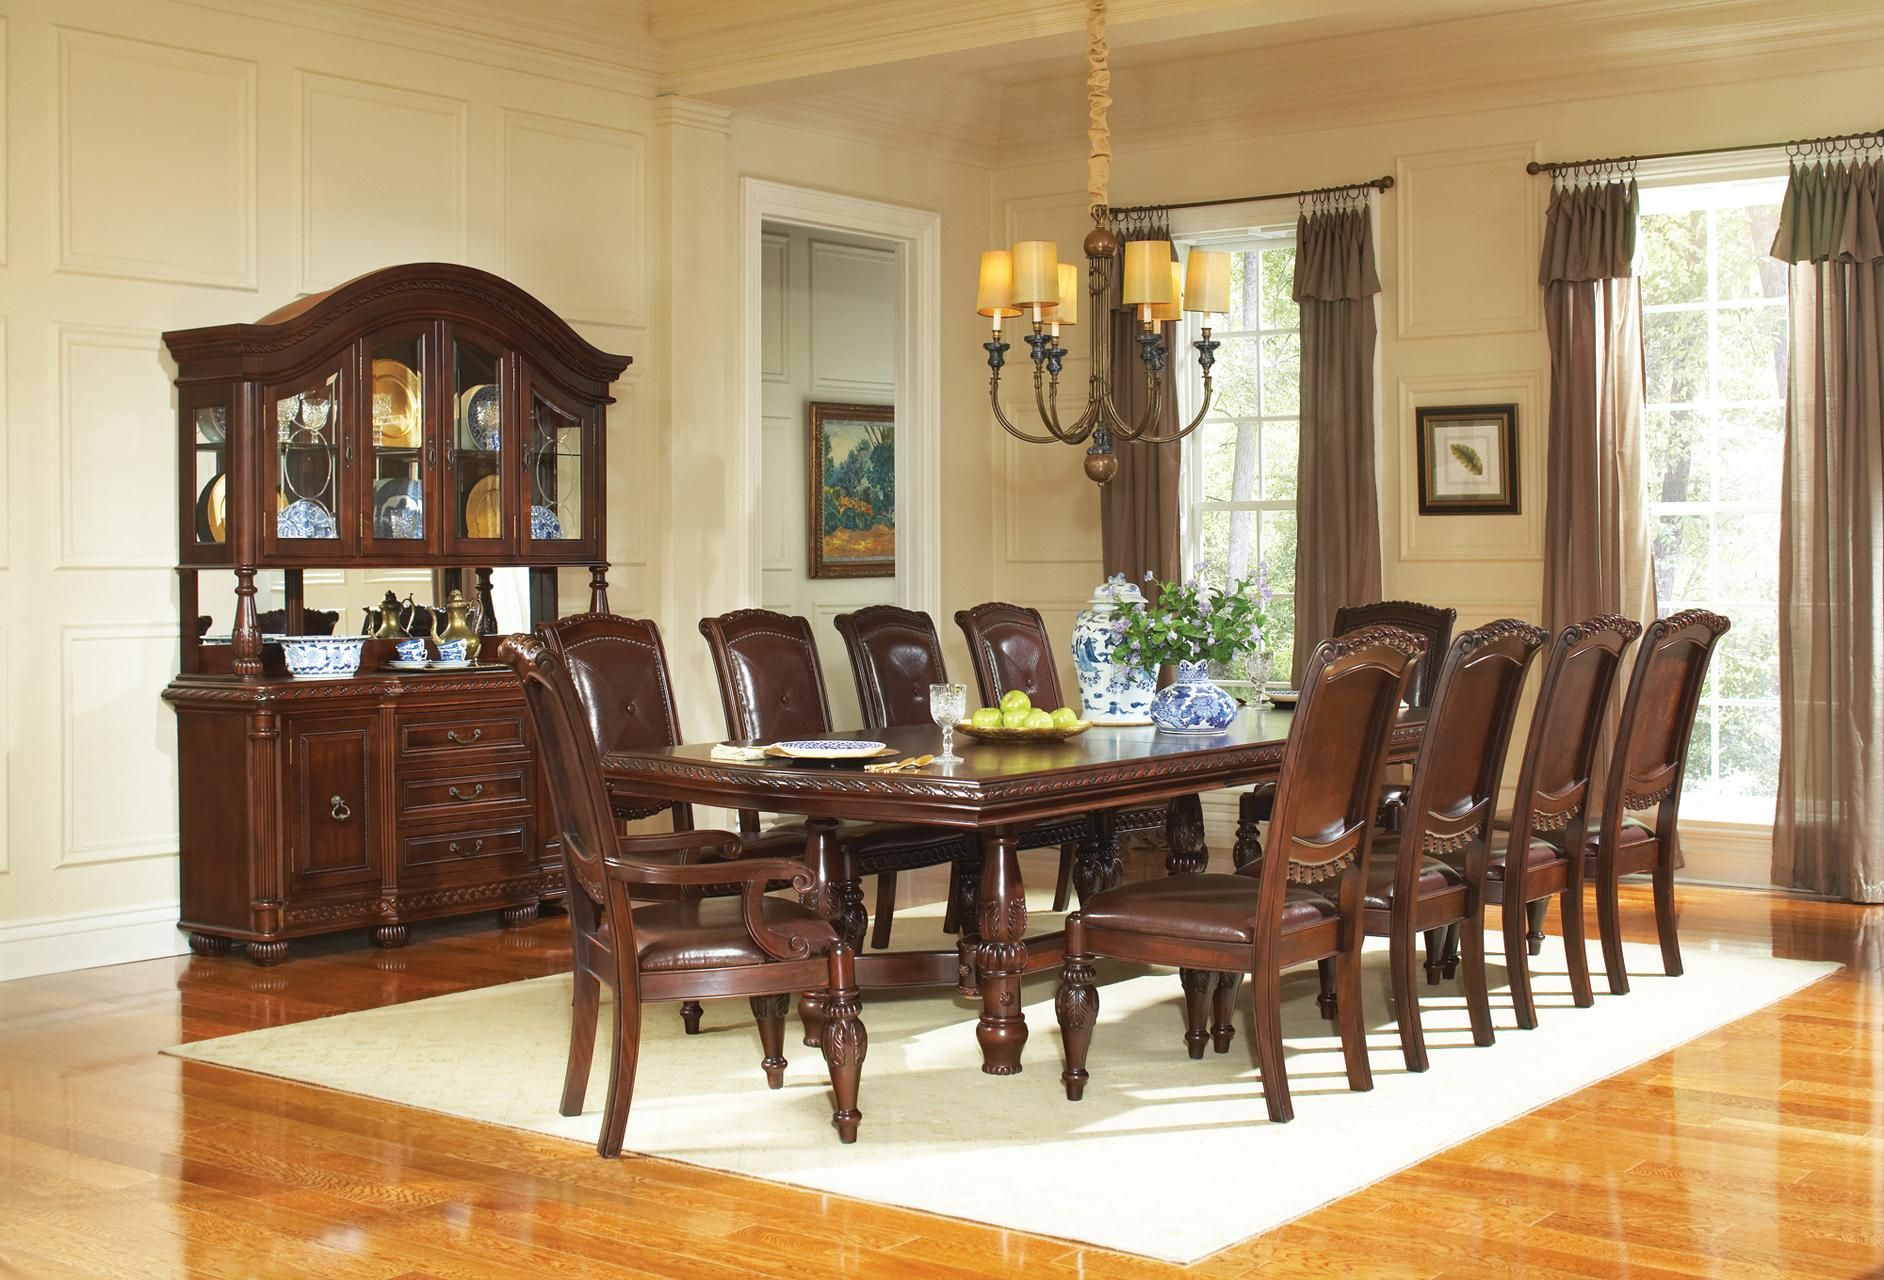 Pin by Alyssa Ernst on dining room   Pinterest   Dining and Room table  Formal Dining